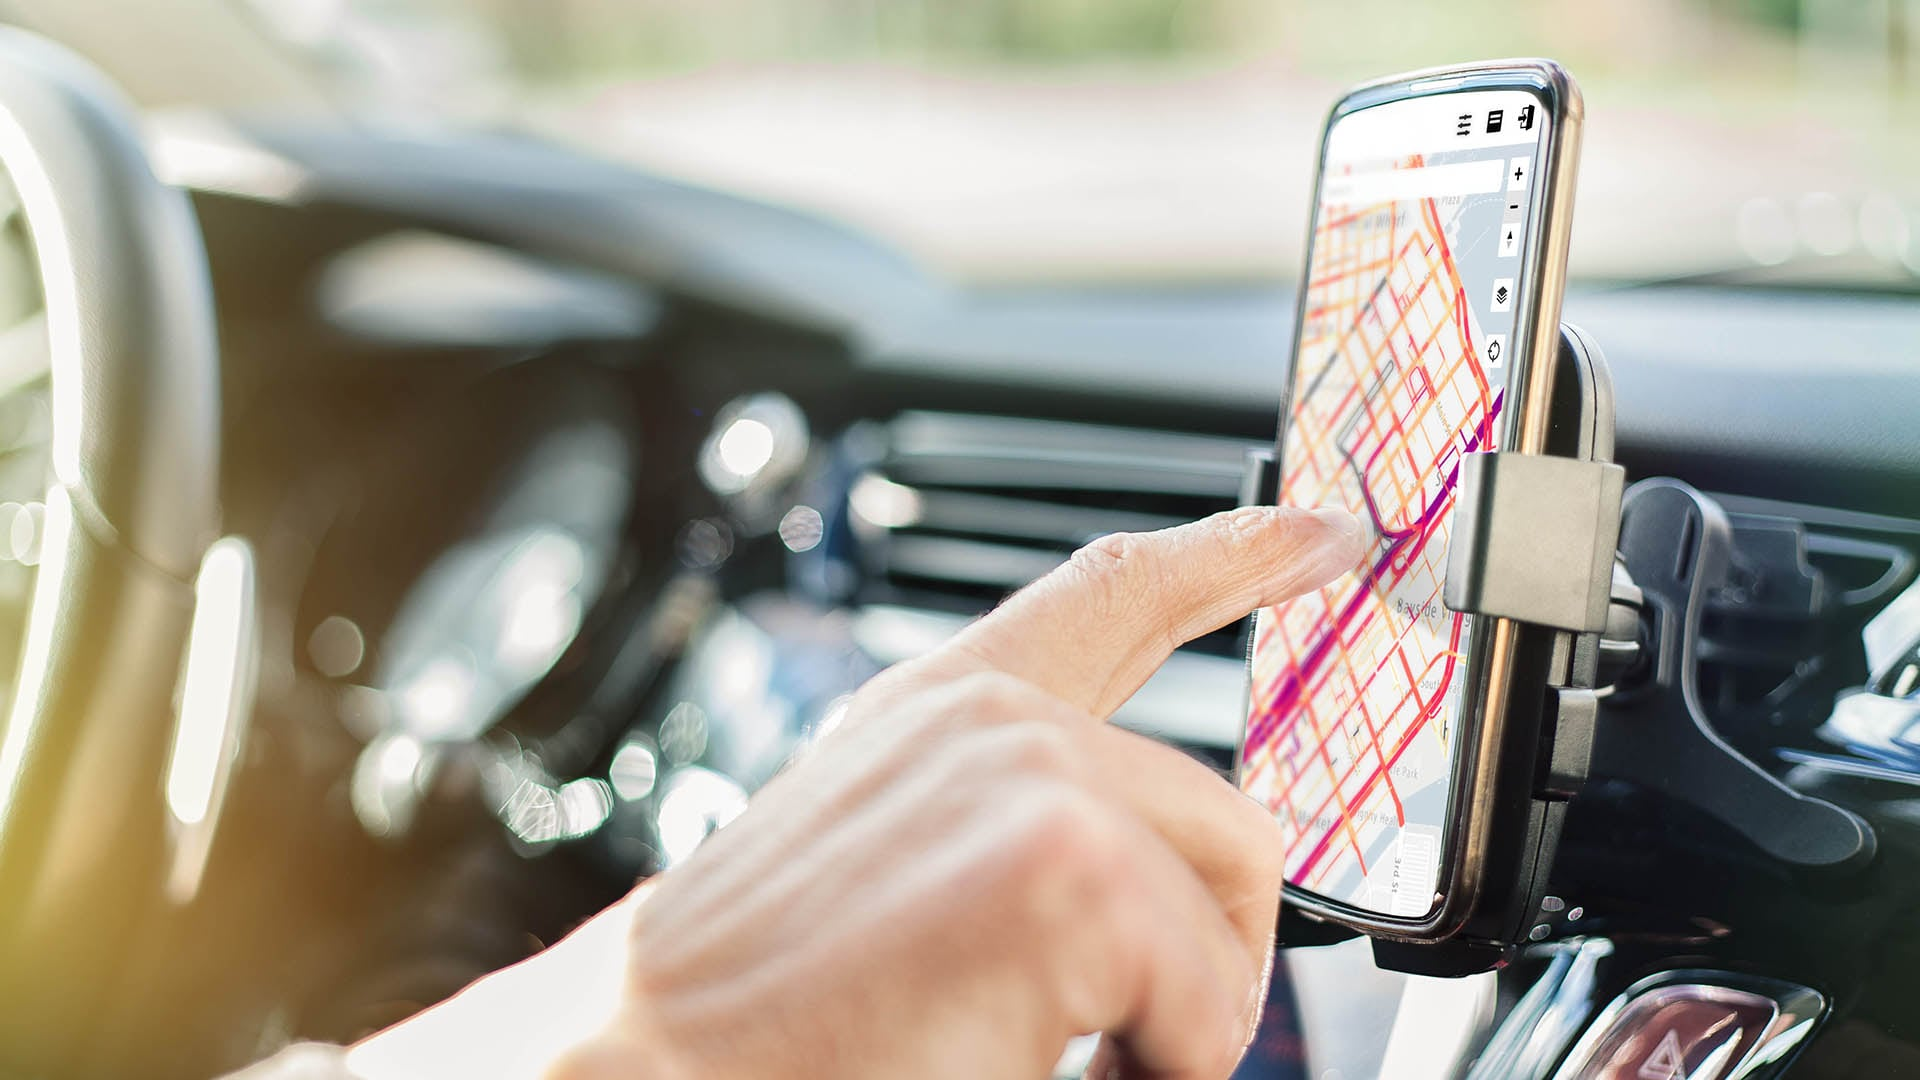 Mobility and on-demand services